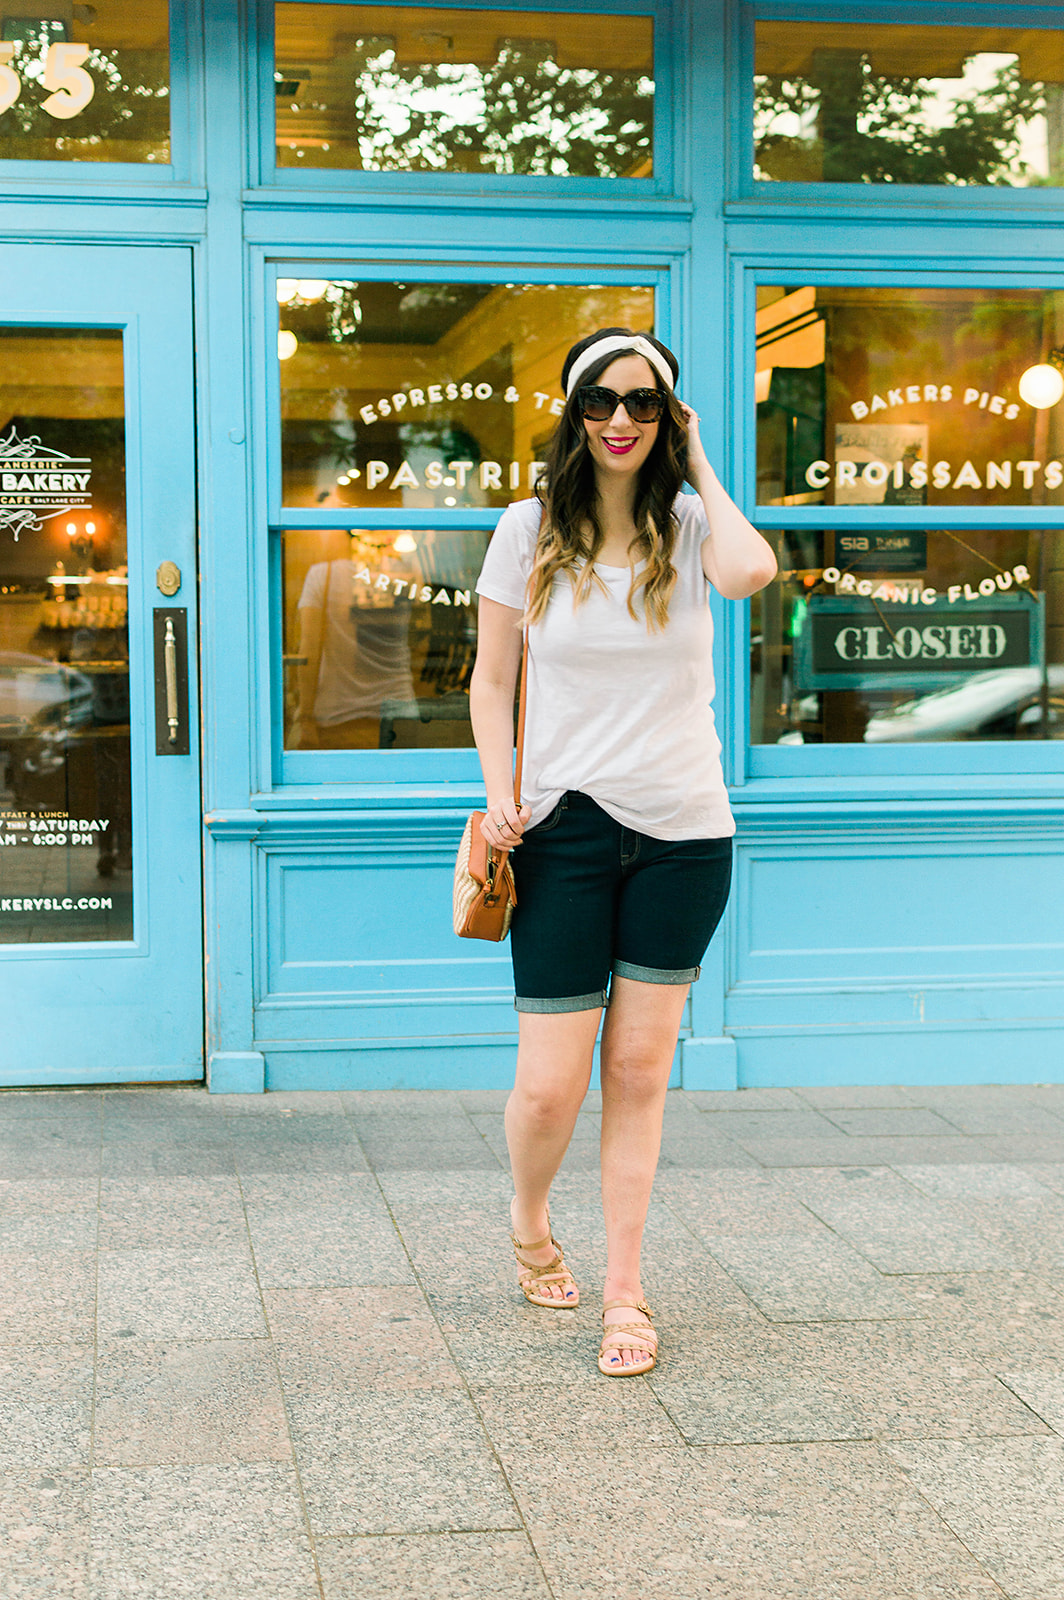 Casual modest summer outfit idea - how to wear bermuda shorts // Hey There Chelsie - A Salt Lake City Lifestyle Blog